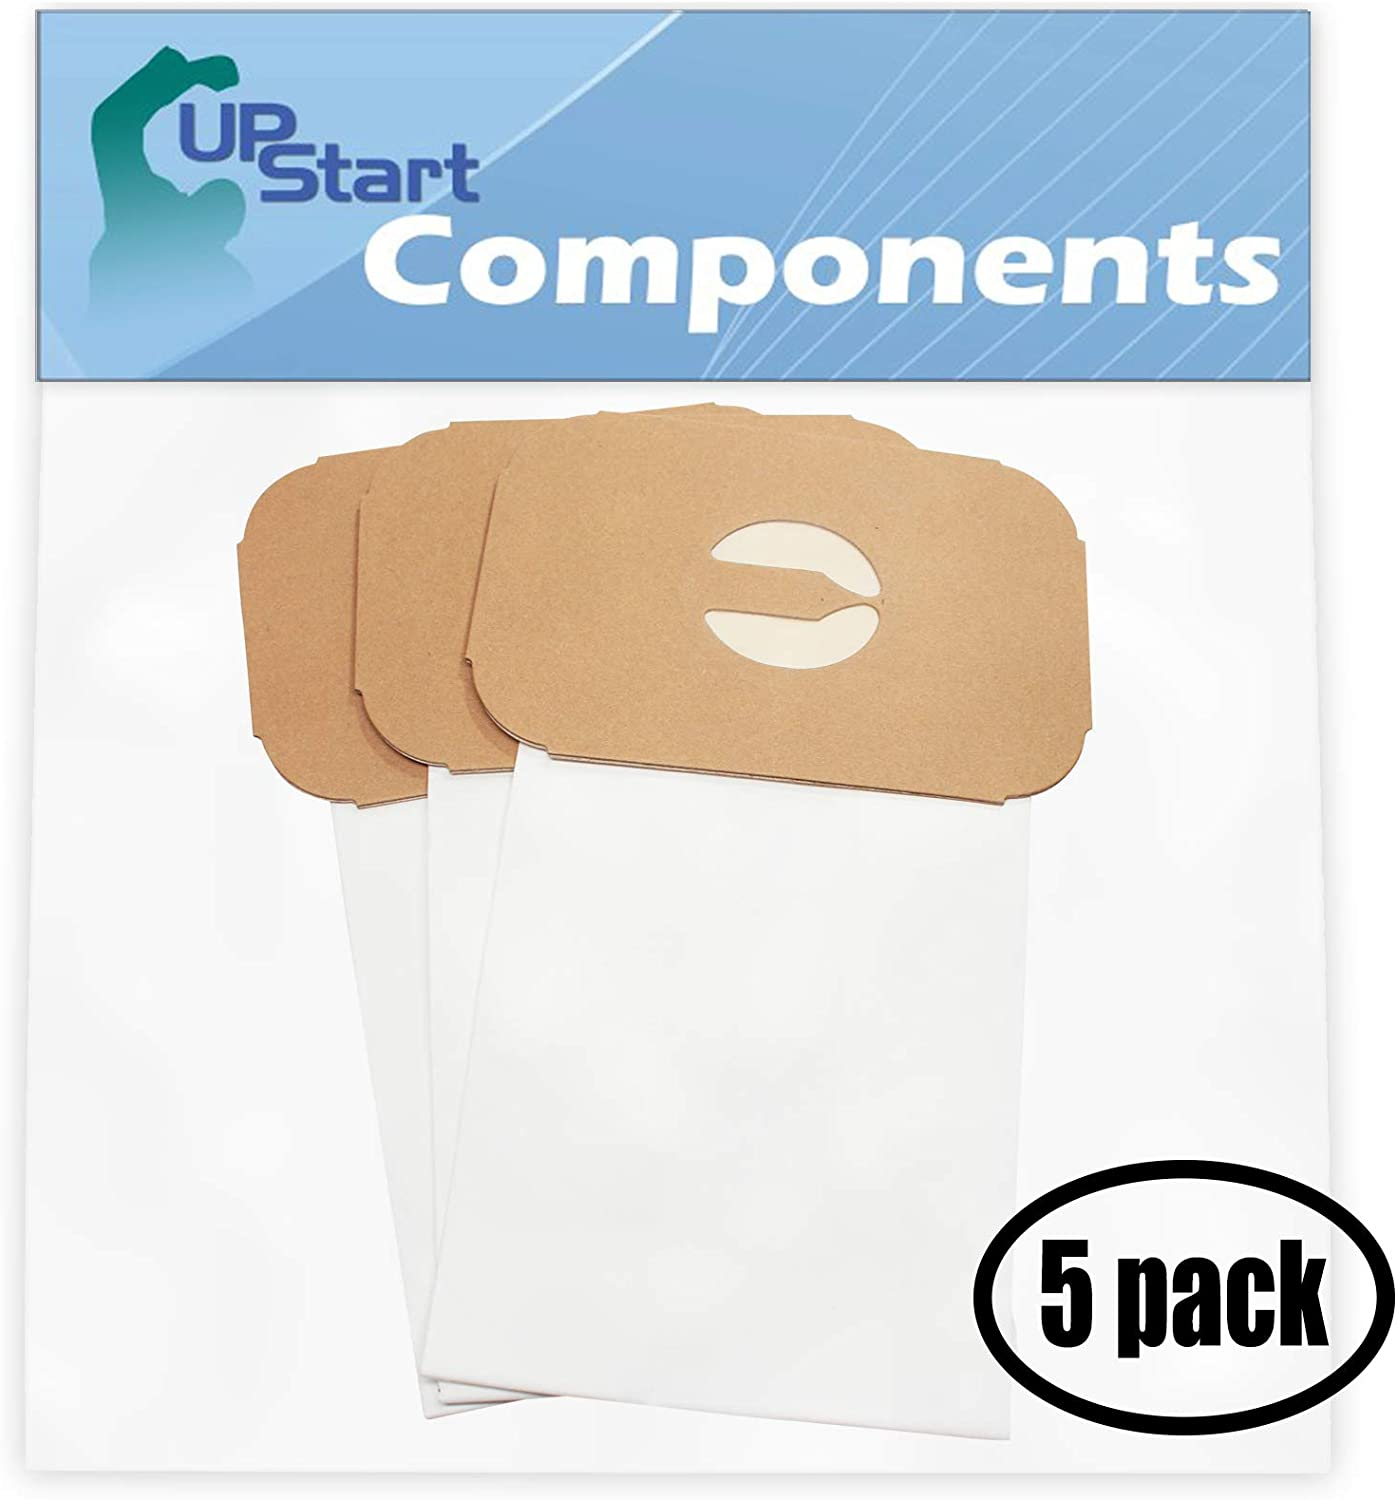 Upstart Battery 15 Replacement for Aerus/Electrolux Diamond Jubilee Style C Vacuum Bags - Compatible with Aerus/Electrolux Canister Tank Type C Vacuum Bags (5-Pack - 3 Vacuum Bags per Pack)